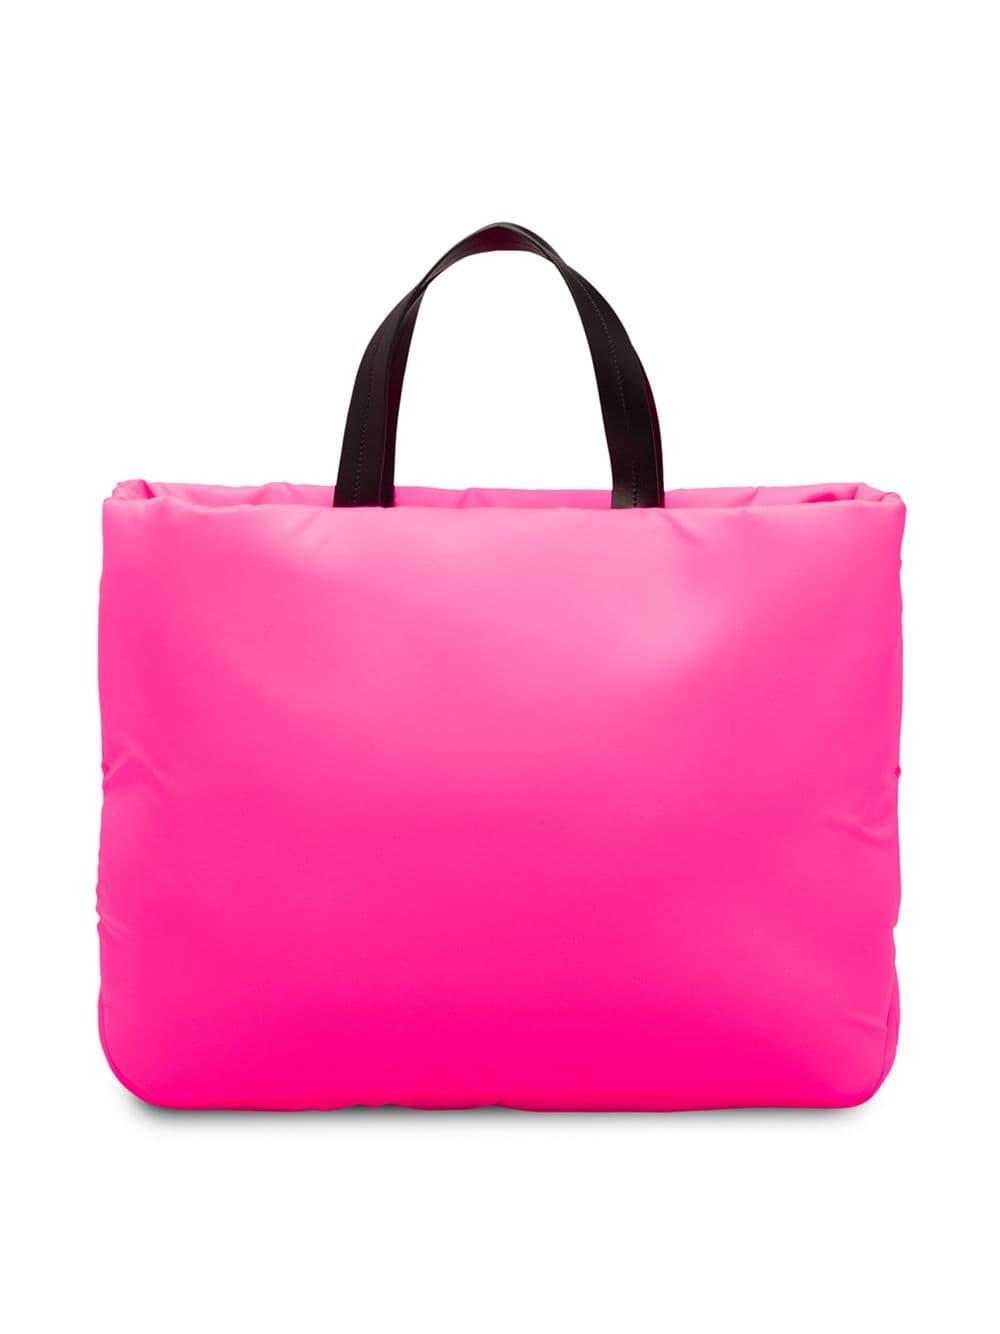 41129b08e2cf Lyst - Prada Medium Padded Nylon Tote in Pink